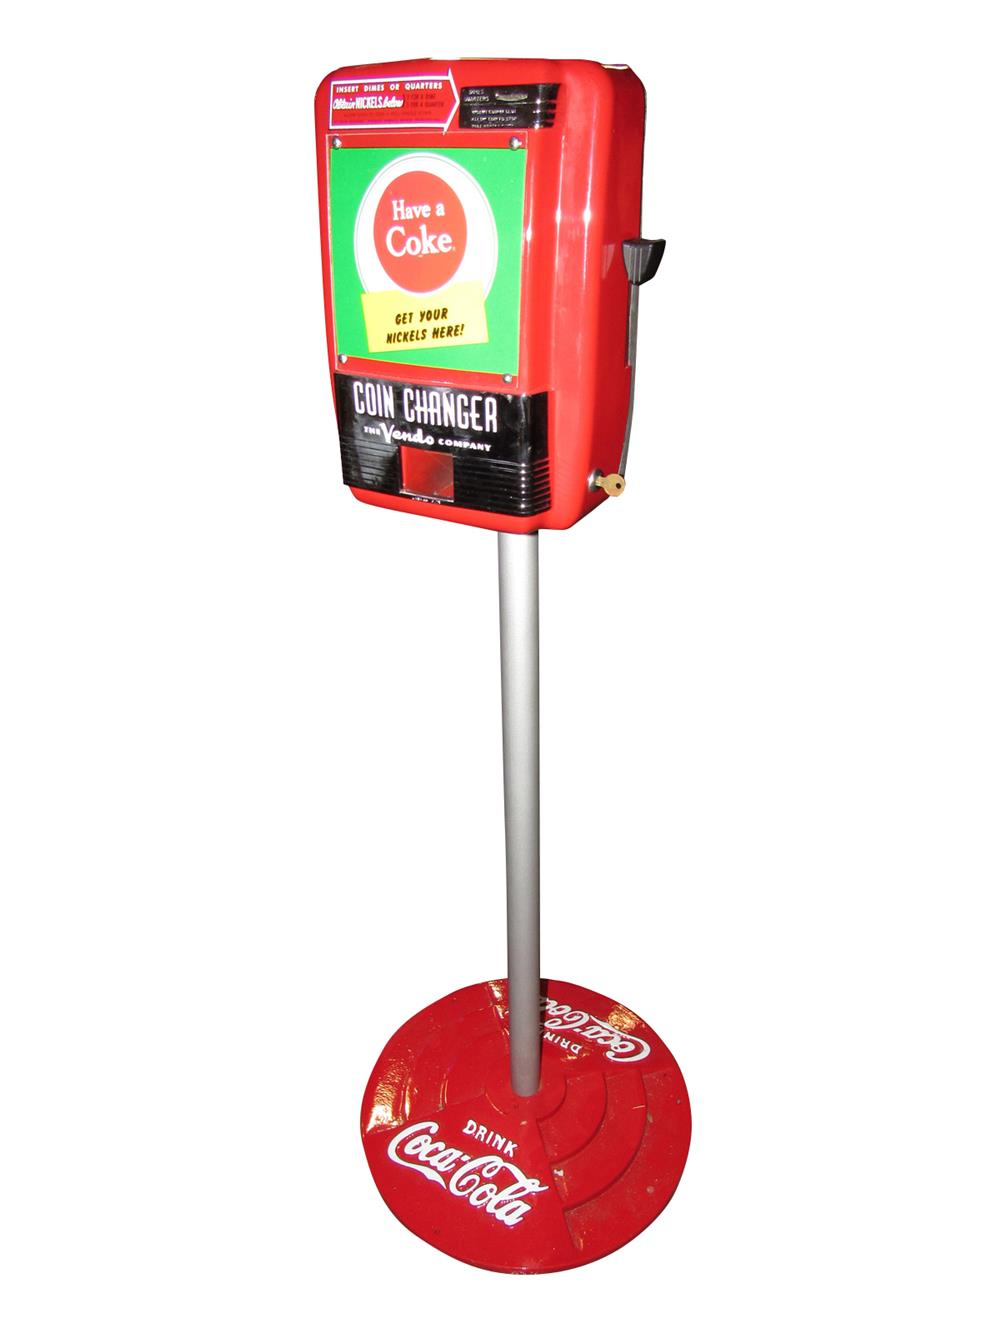 Whats My Car Worth Cast >> Rare and restored 1950s Coca-Cola Vendo coin-changer on stand203962